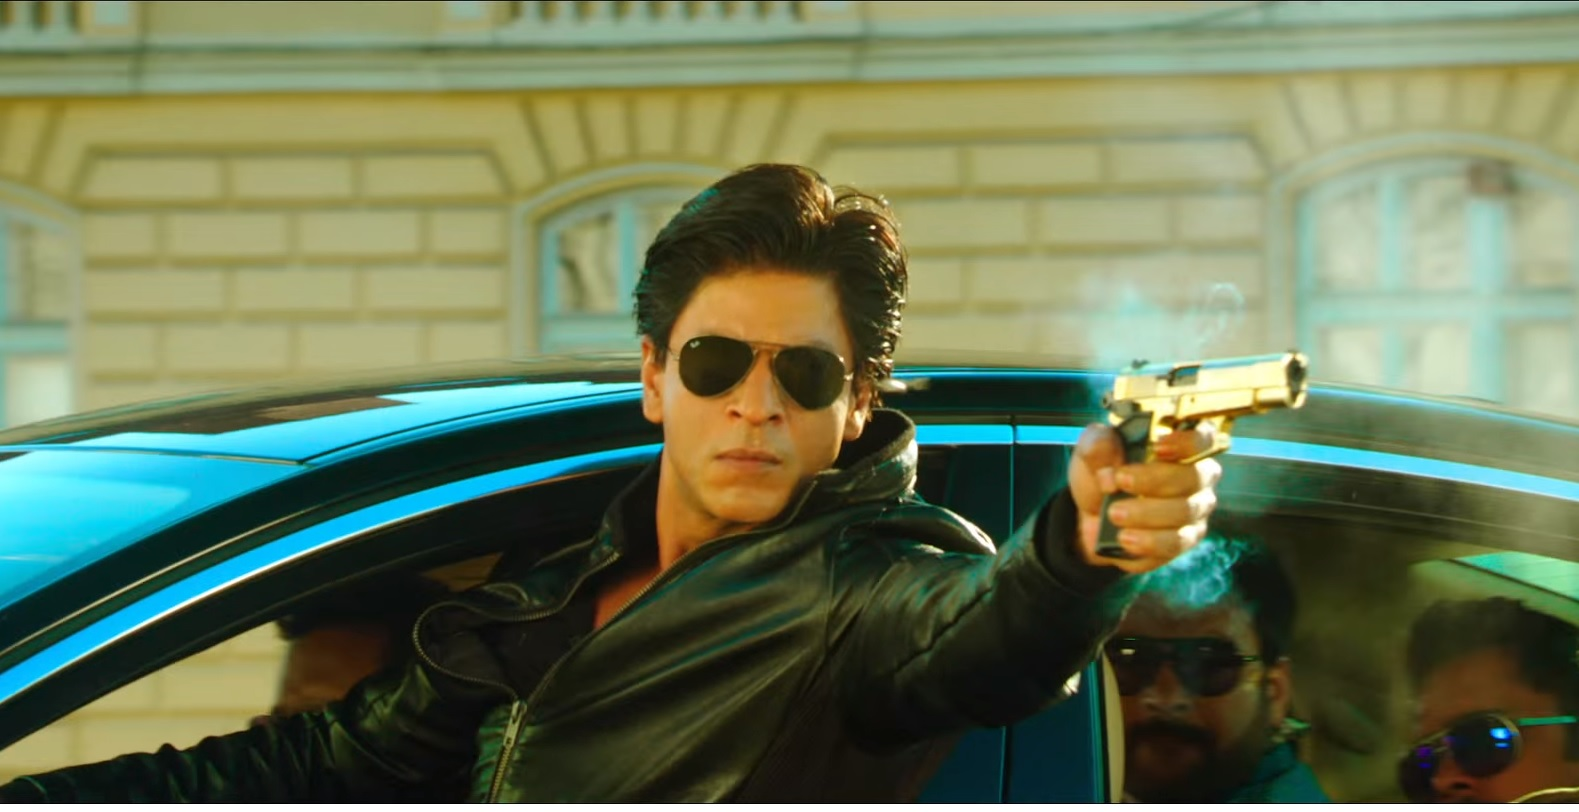 a hd wallpapers: shahrukh khan - srk 4k hd wallpapers images free